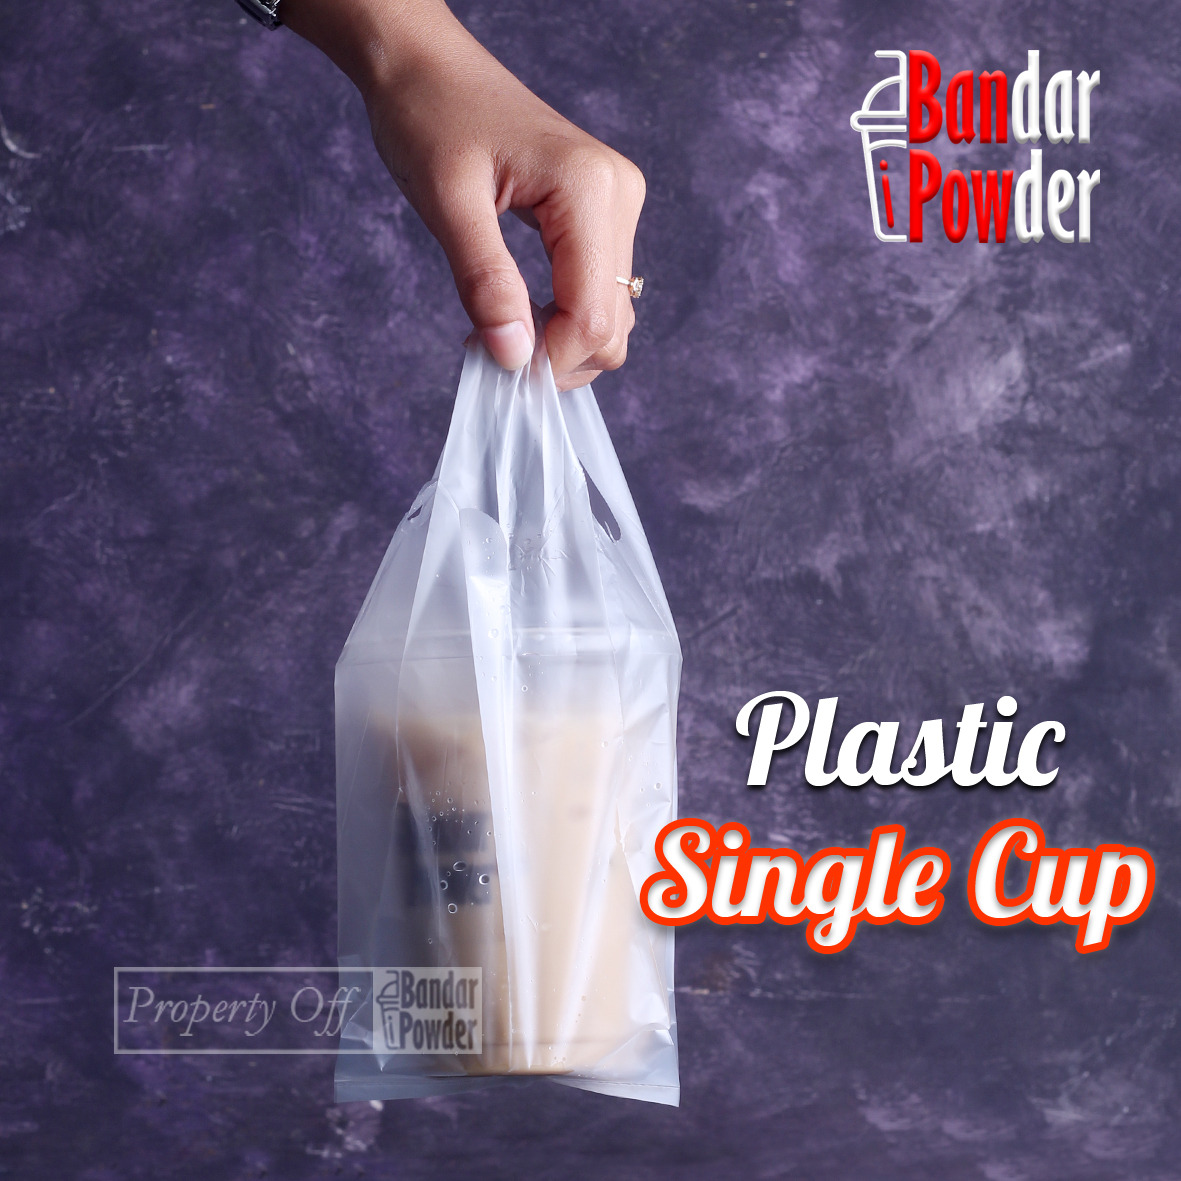 Jual Plastik Double Cup | Bandar Powder